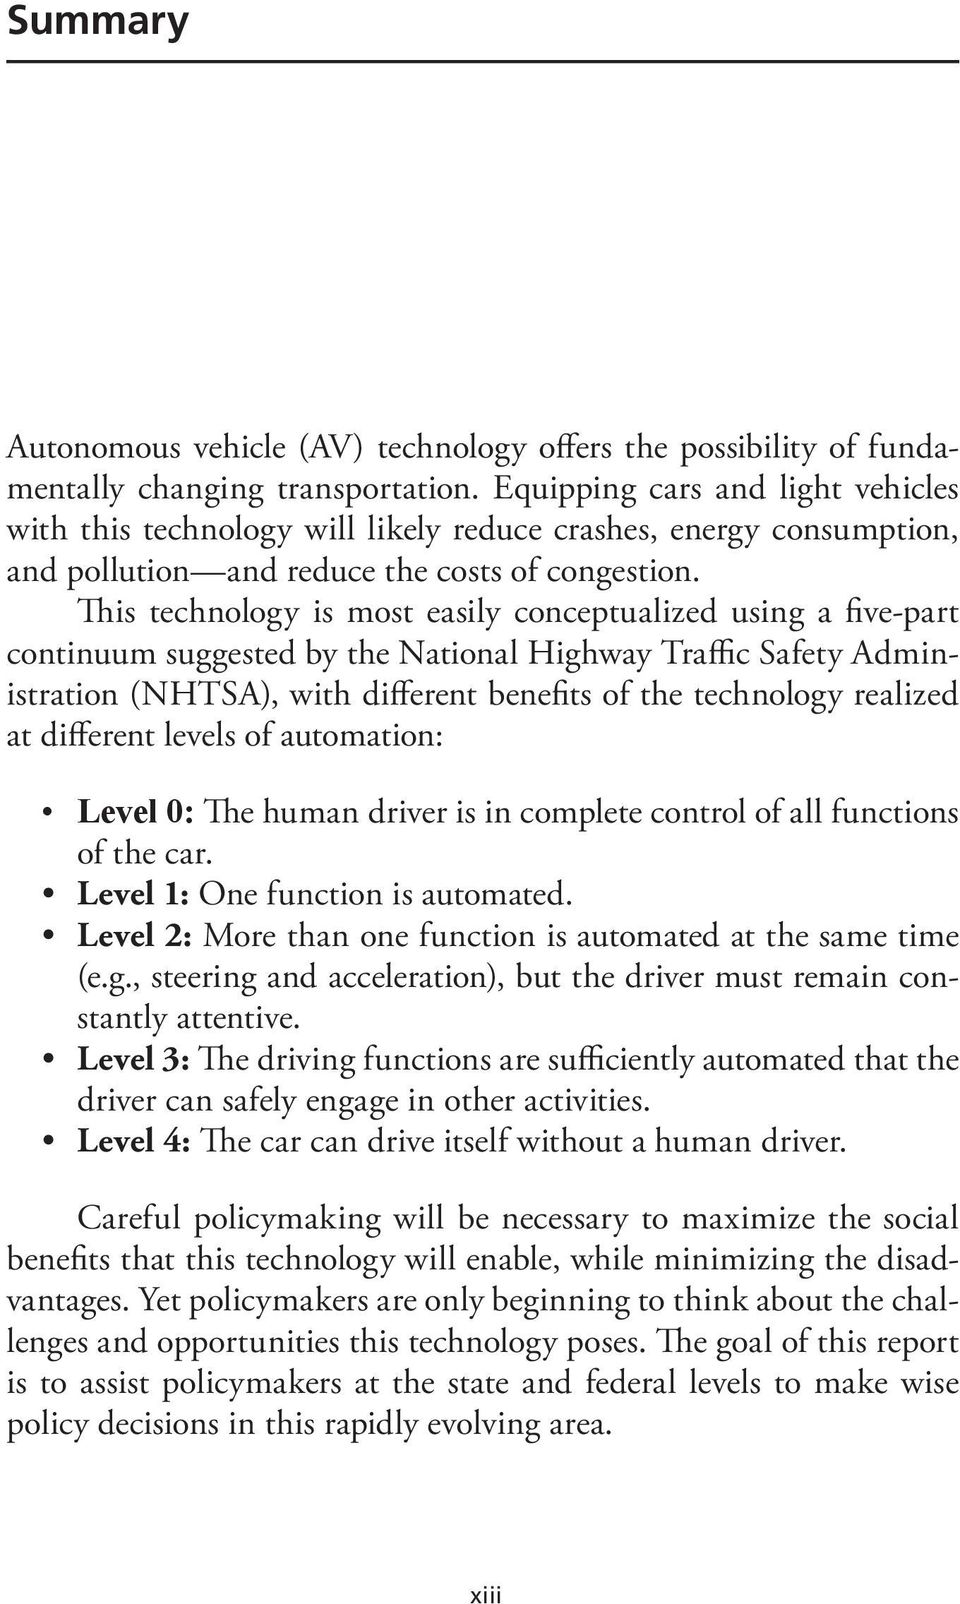 This technology is most easily conceptualized using a five-part continuum suggested by the National Highway Traffic Safety Administration (NHTSA), with different benefits of the technology realized